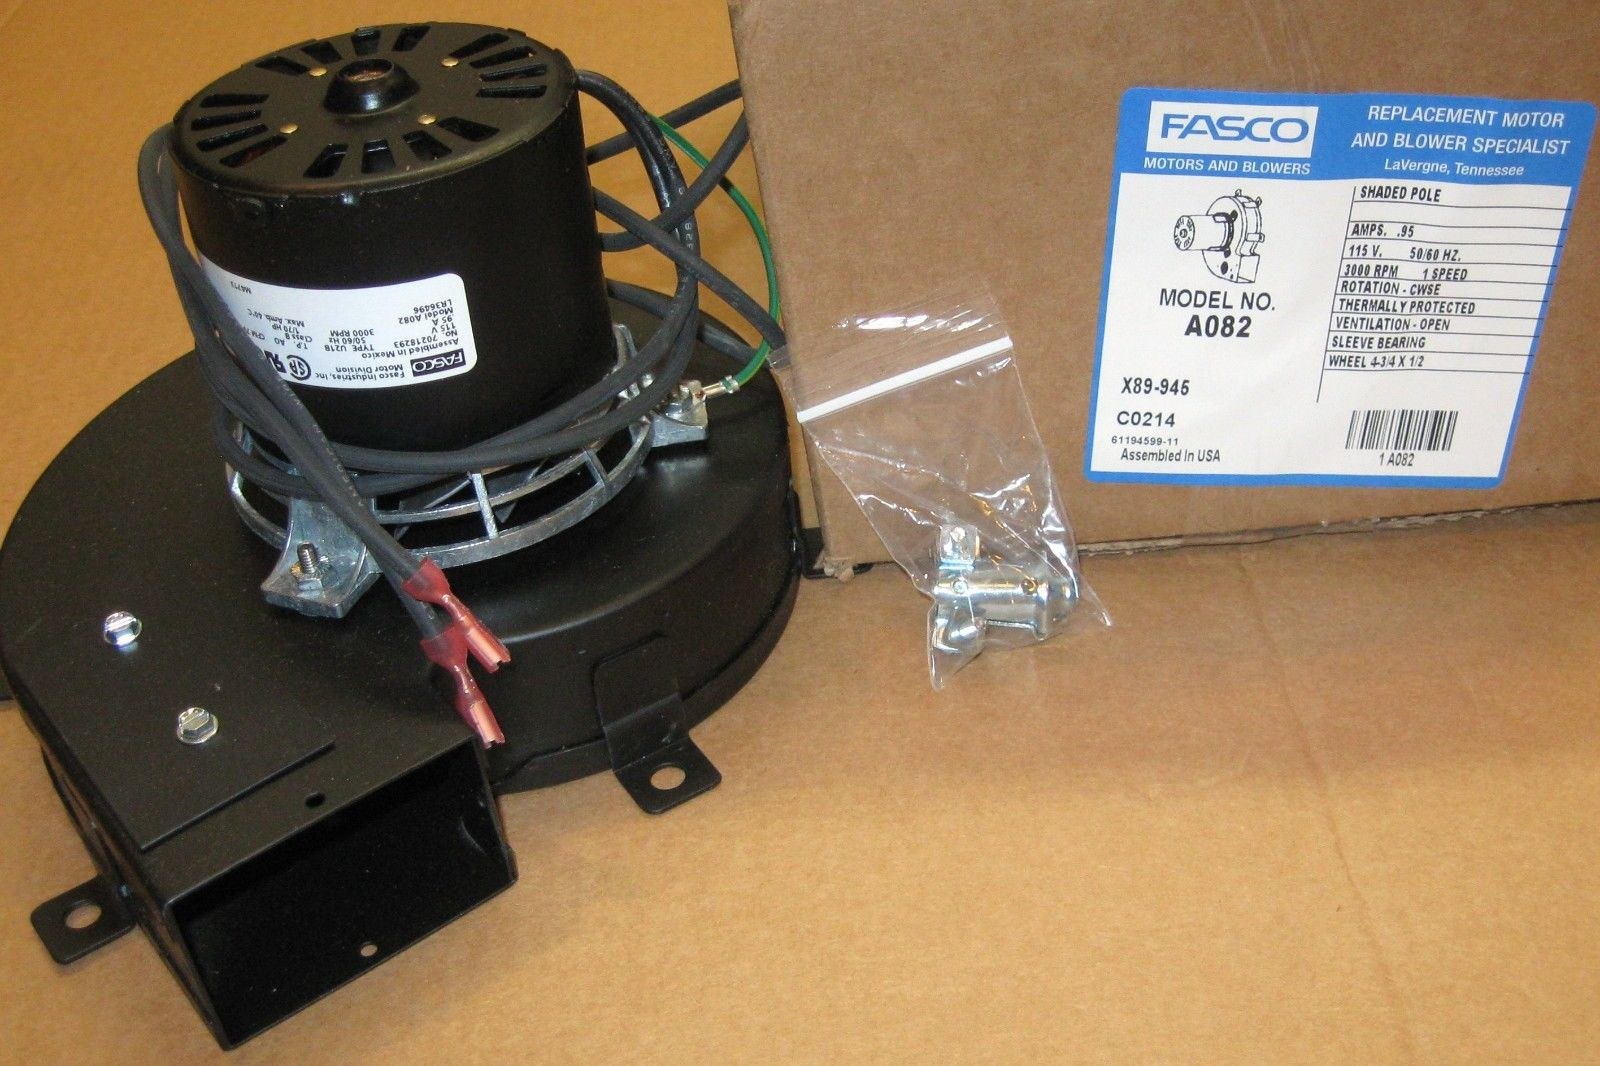 A082 fasco centrifugal blower motor 75 cfm 115 volts for Fasco motors and blowers